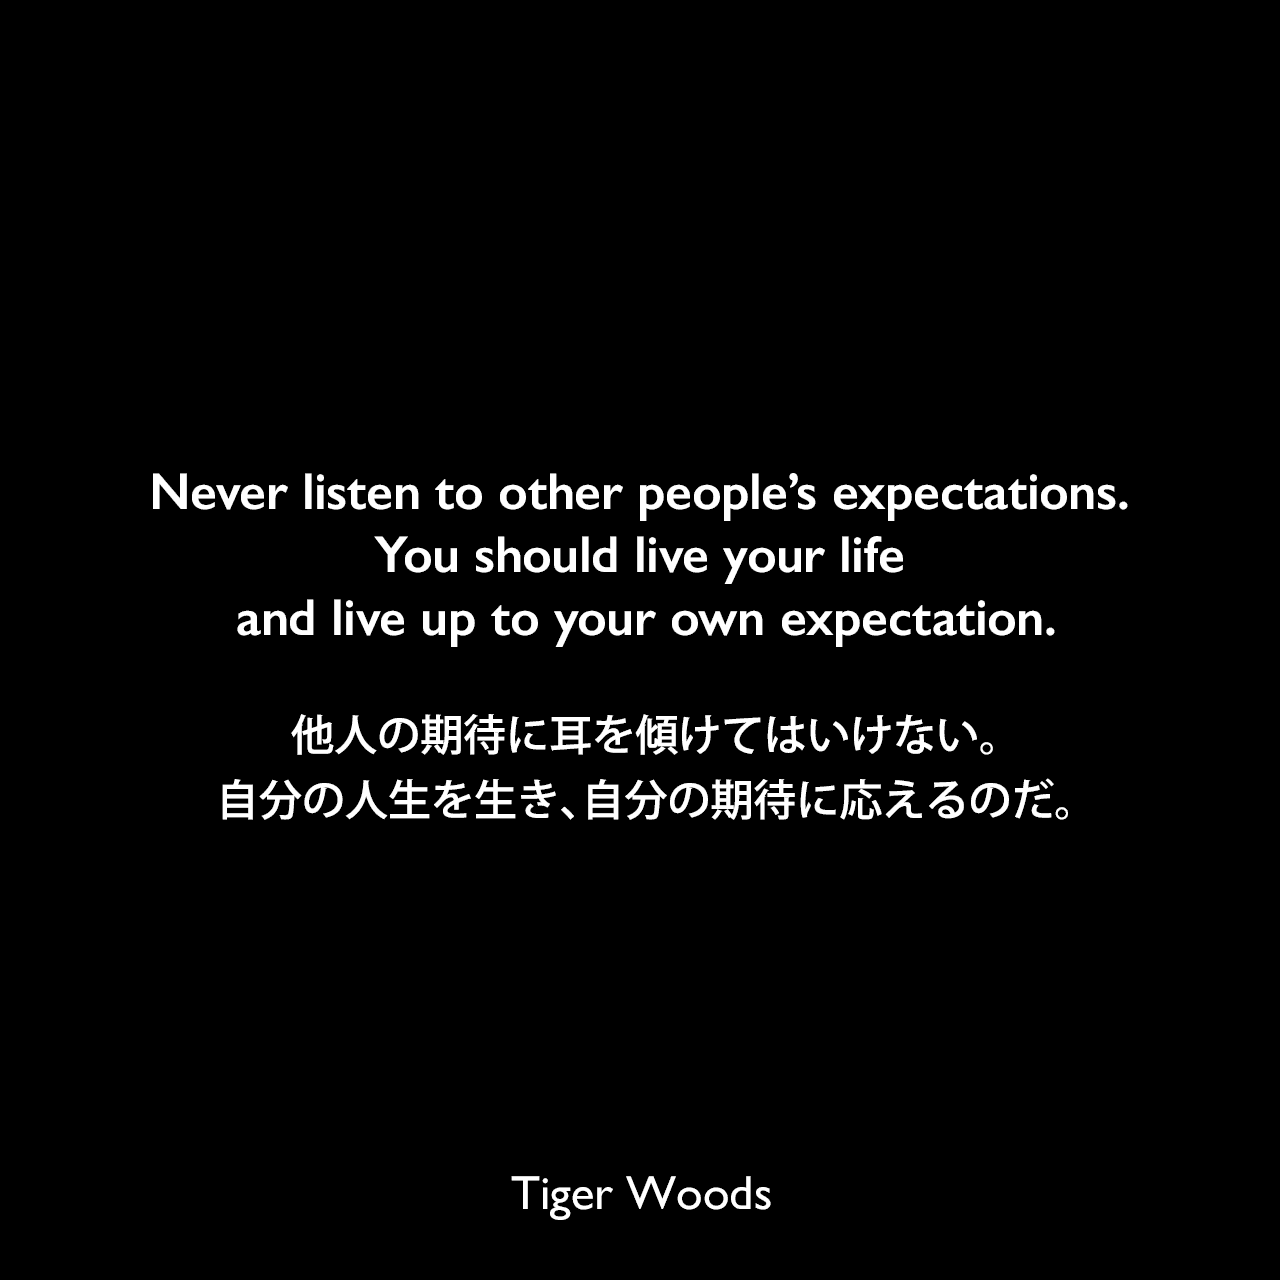 Never listen to other people's expectations. You should live your life and live up to your own expectation.他人の期待に耳を傾けてはいけない。自分の人生を生き、自分の期待に応えるのだ。